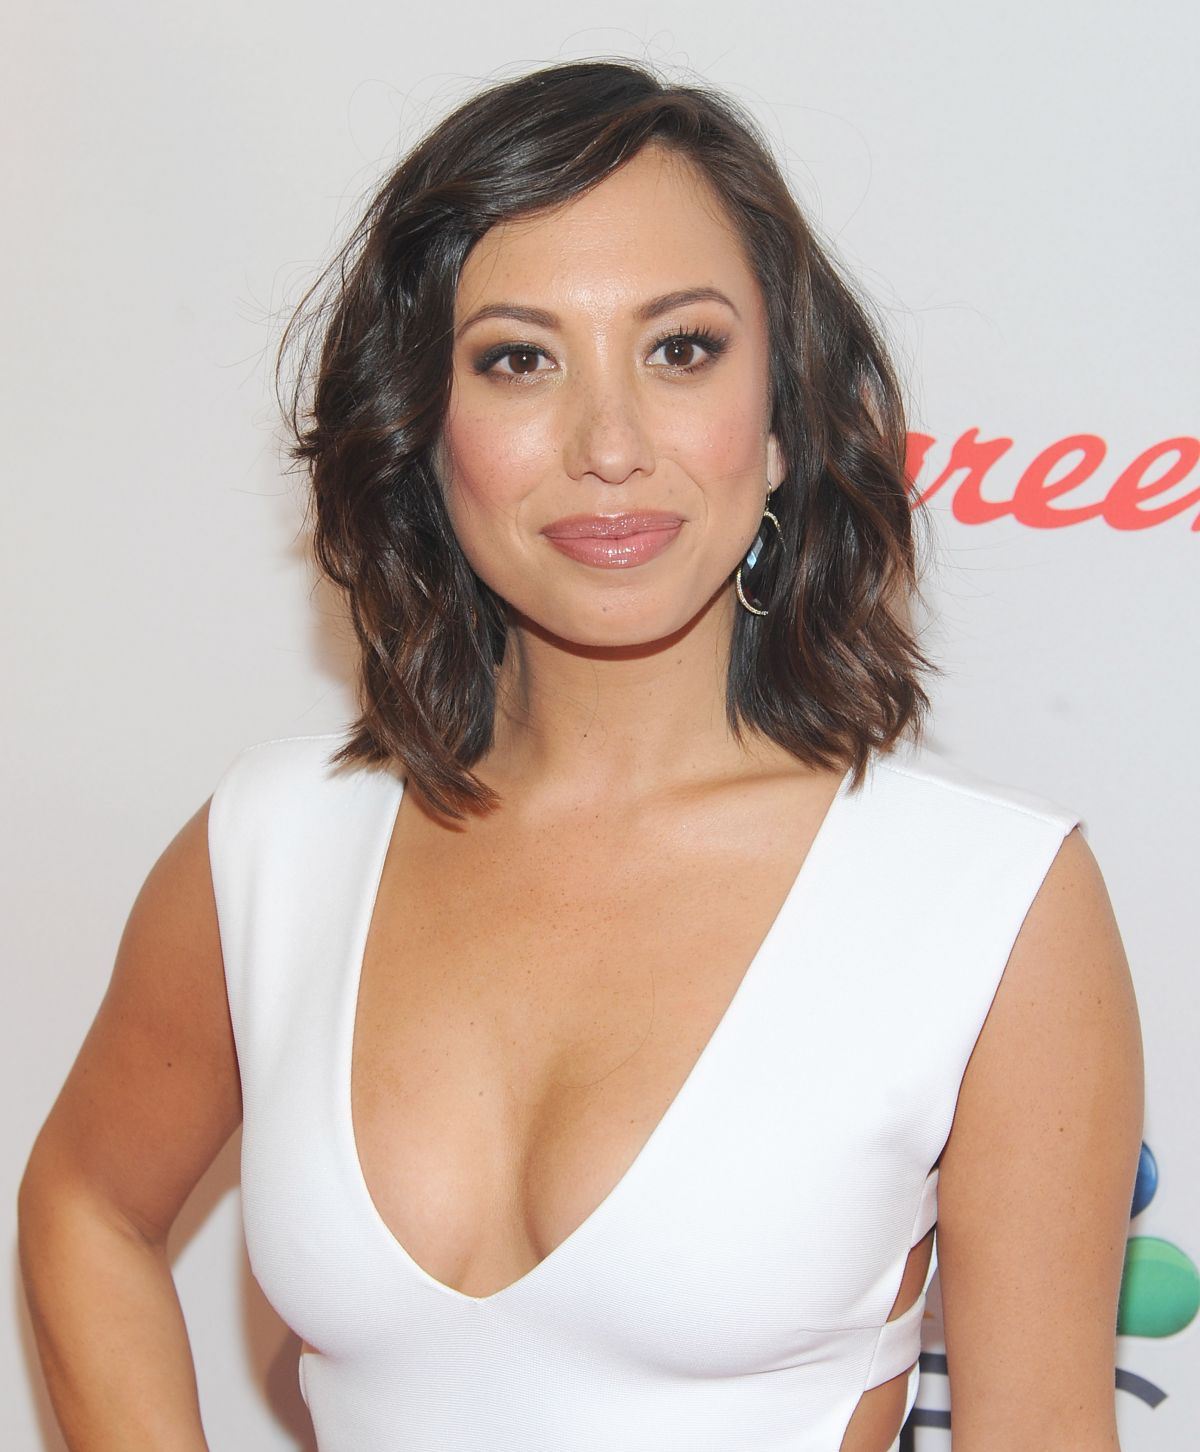 Cheryl Burke At The Red Nose Day Charity Event - Celebzz Cheryl Burke